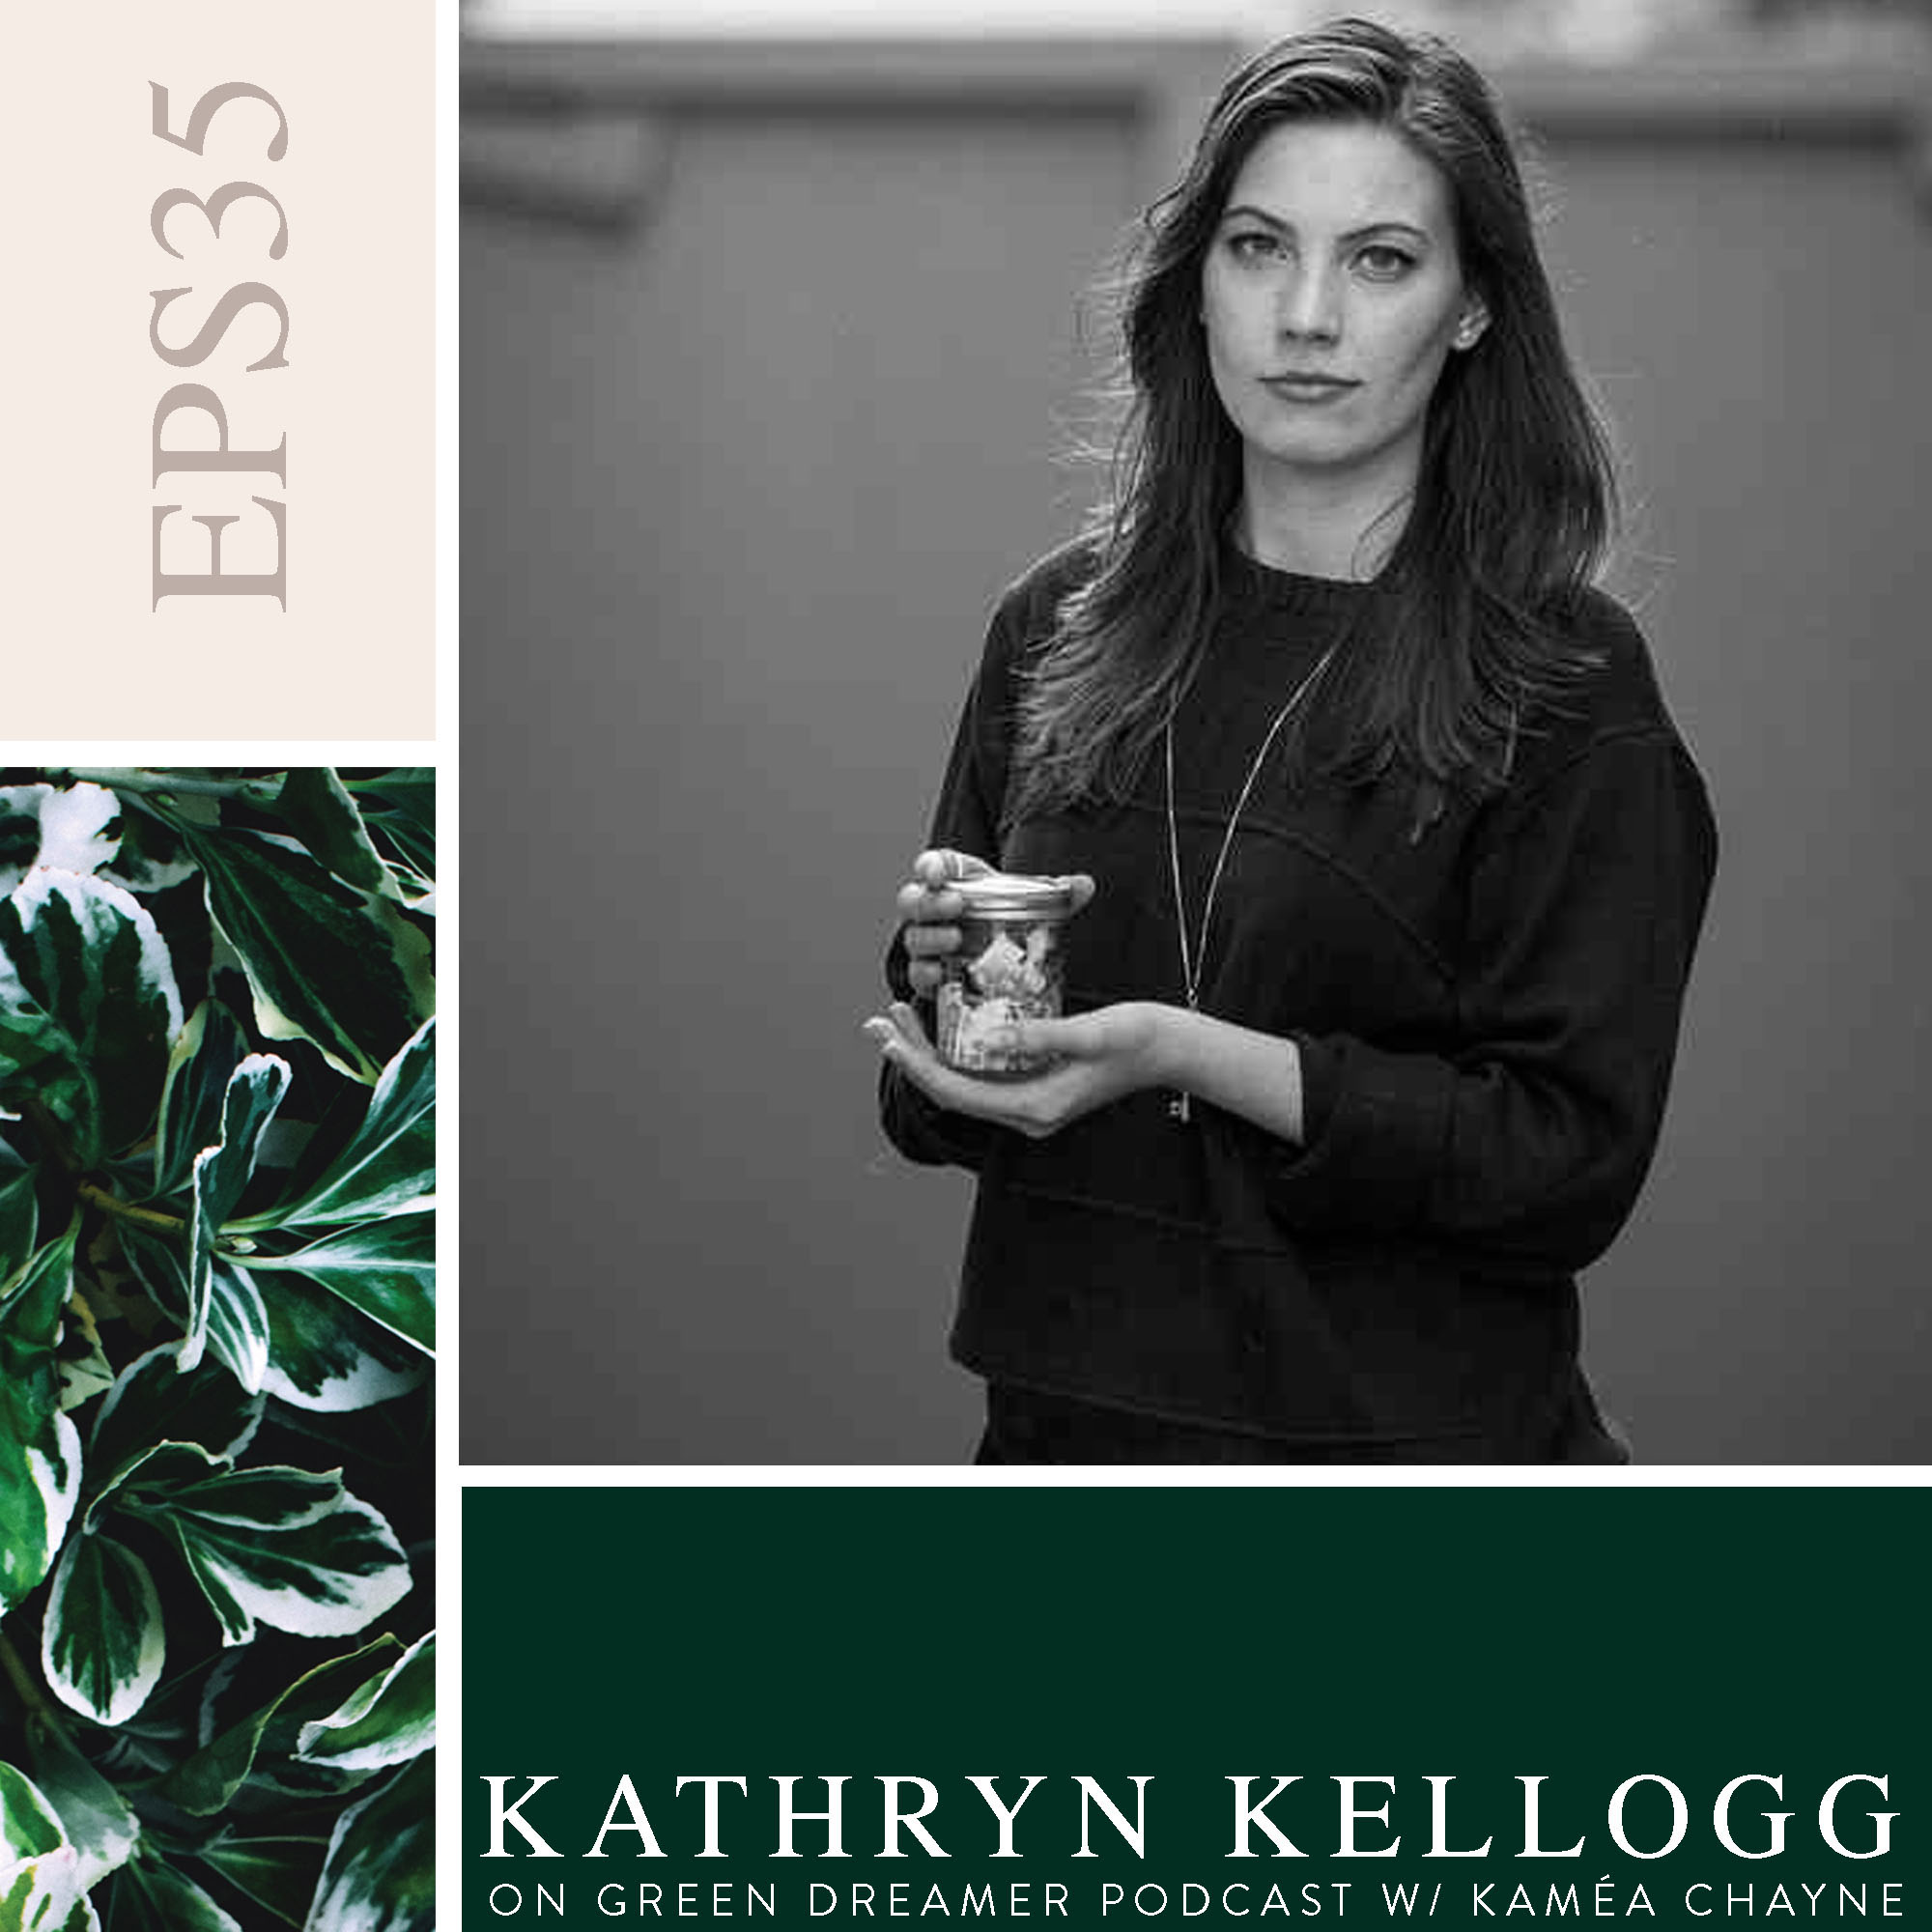 35) BW Kathryn-Kellogg-of-Going-Zero-Waste-Planet-or-Plastic-talks-Sustainability-on-Green-Dreamer-Podcast-with-Kaméa-Chayne.jpg